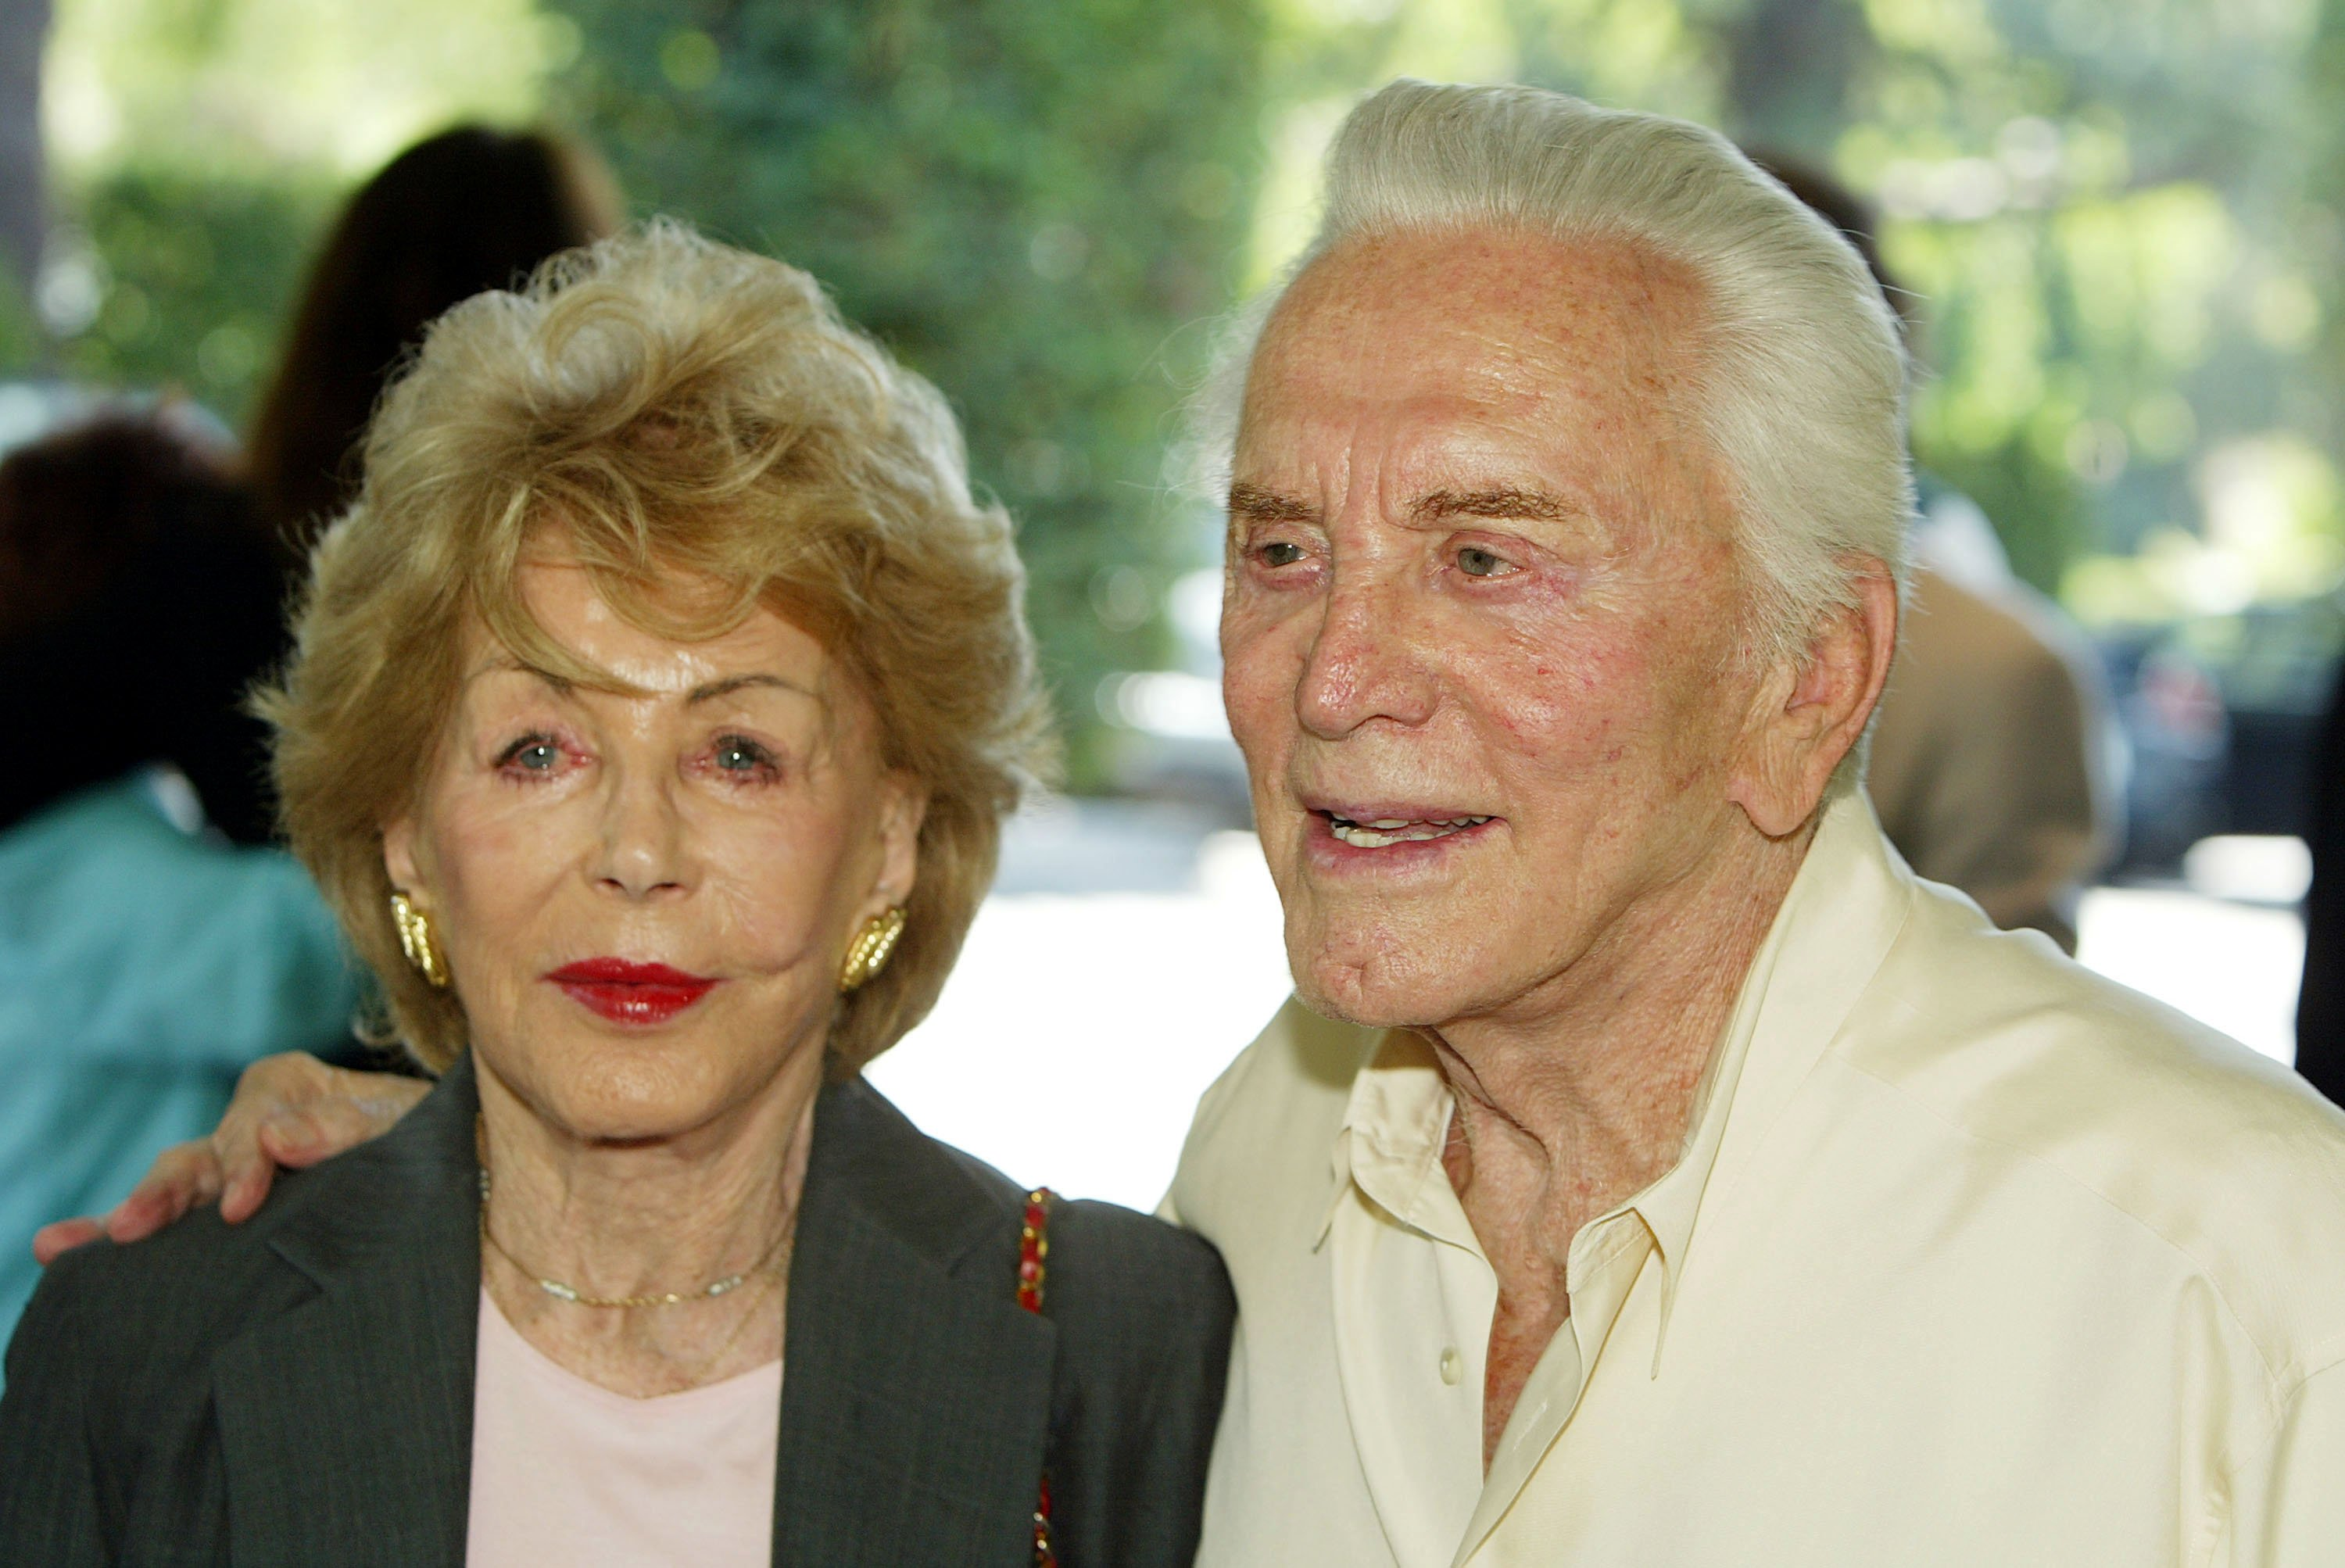 Actor Kirk Douglas (right) and his wife Anne arrive at the annual Hollywood Foreign Press Association installation luncheon on August 11, 2004, at the Beverly Hills Hotel, in Beverly Hills, California. | Source: Getty Images.